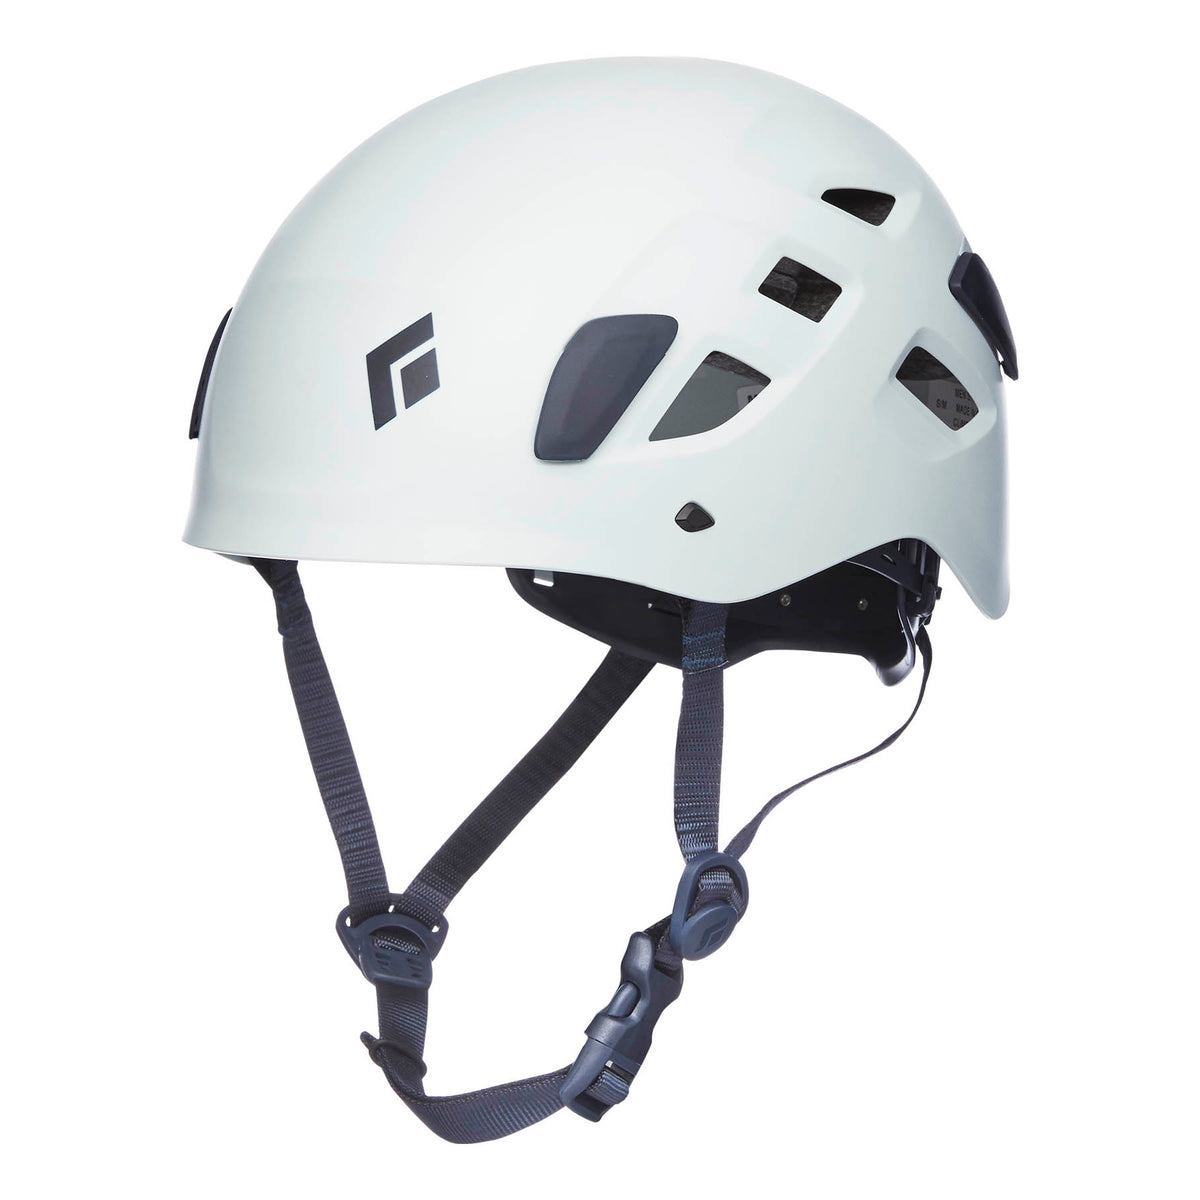 Black Diamond Half Dome climbing helmet, front/side view in white colour with grey chin strap